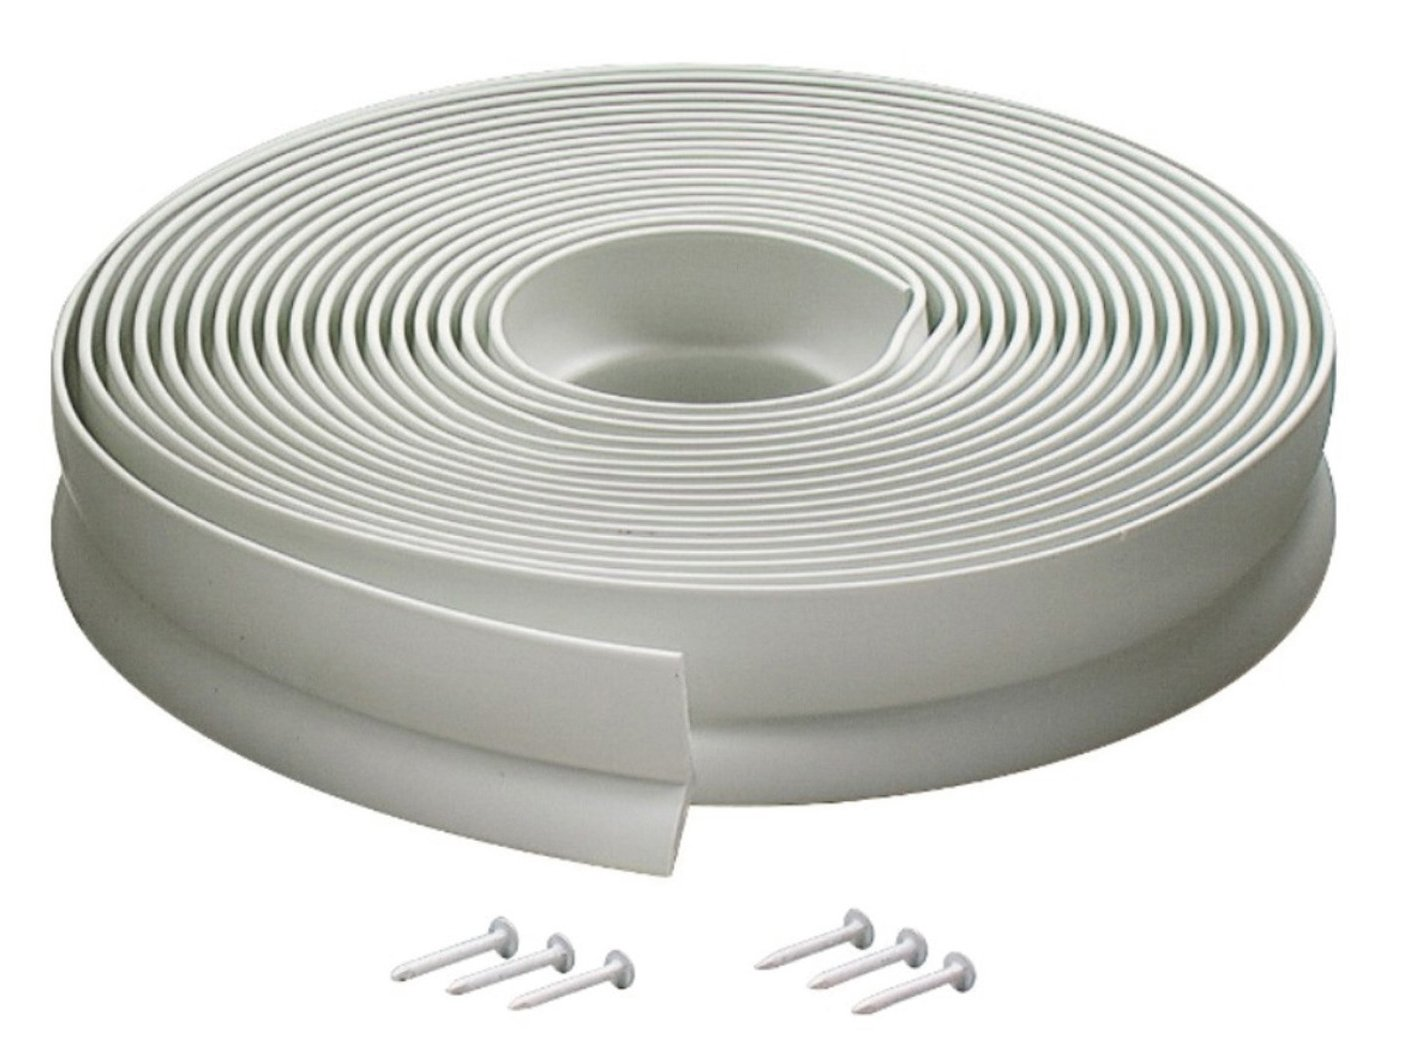 Amazon.com: M D Building Products 3822 Vinyl Garage Door Top And Sides  Seal, 30 Feet, White: Home Improvement